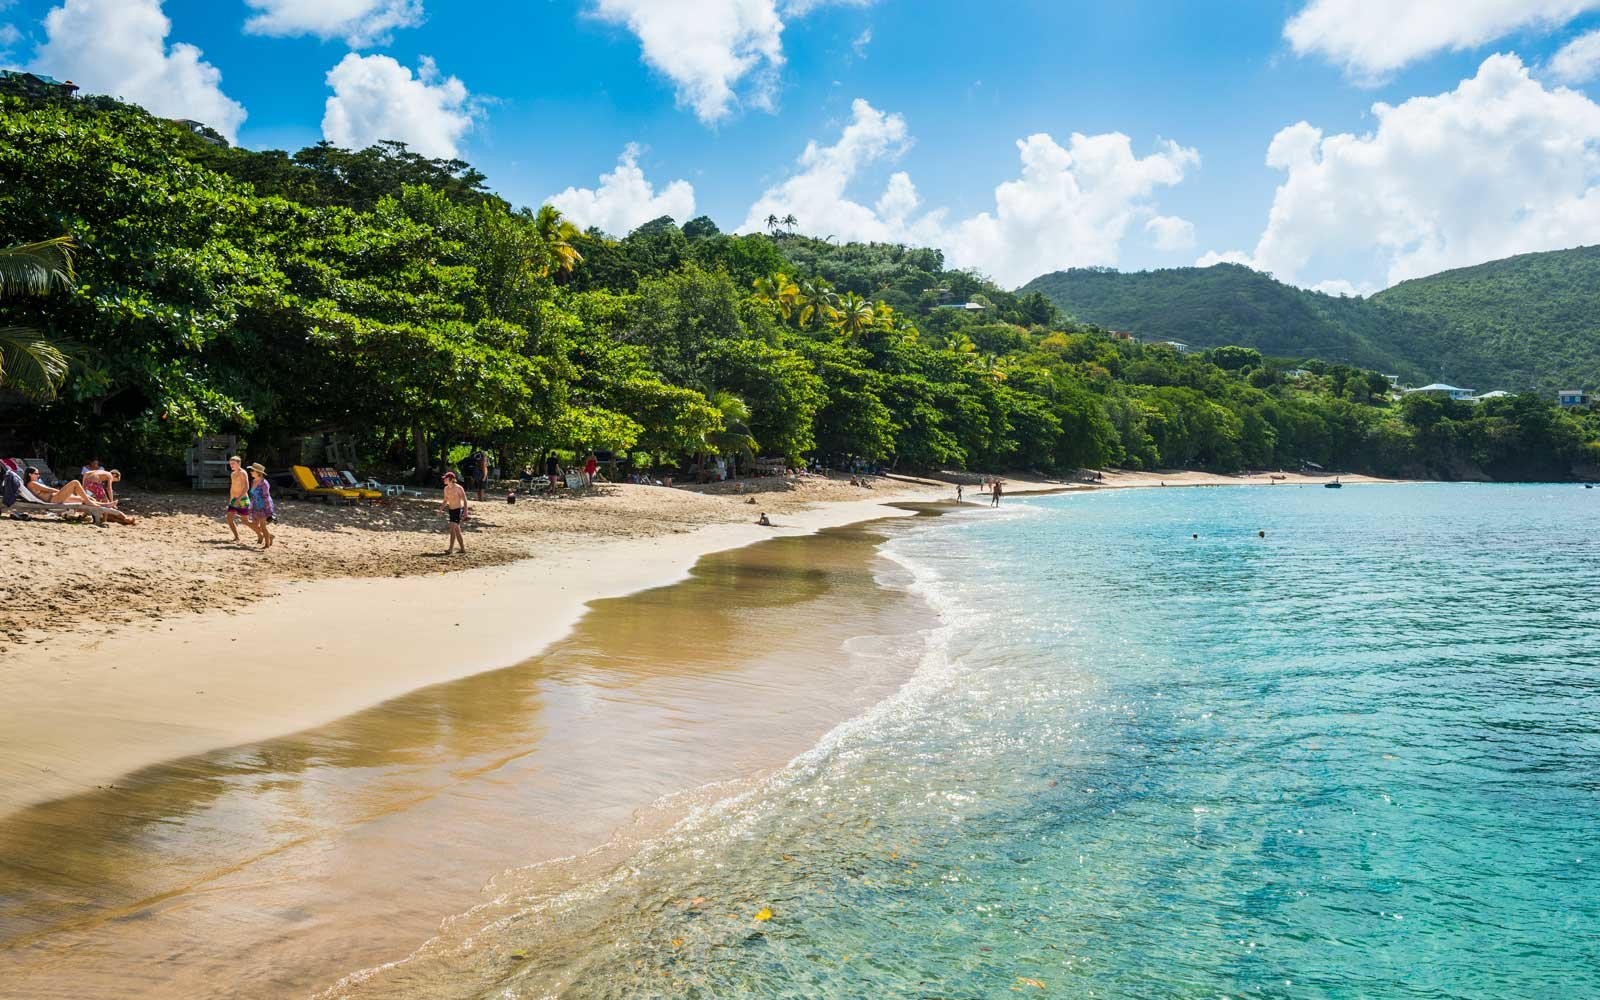 Princess Margaret beach, Admiralty Bay, Bequia, The Grenadines, St. Vincent and the Grenadines, Windward Islands, West Indies, Caribbean, Central America